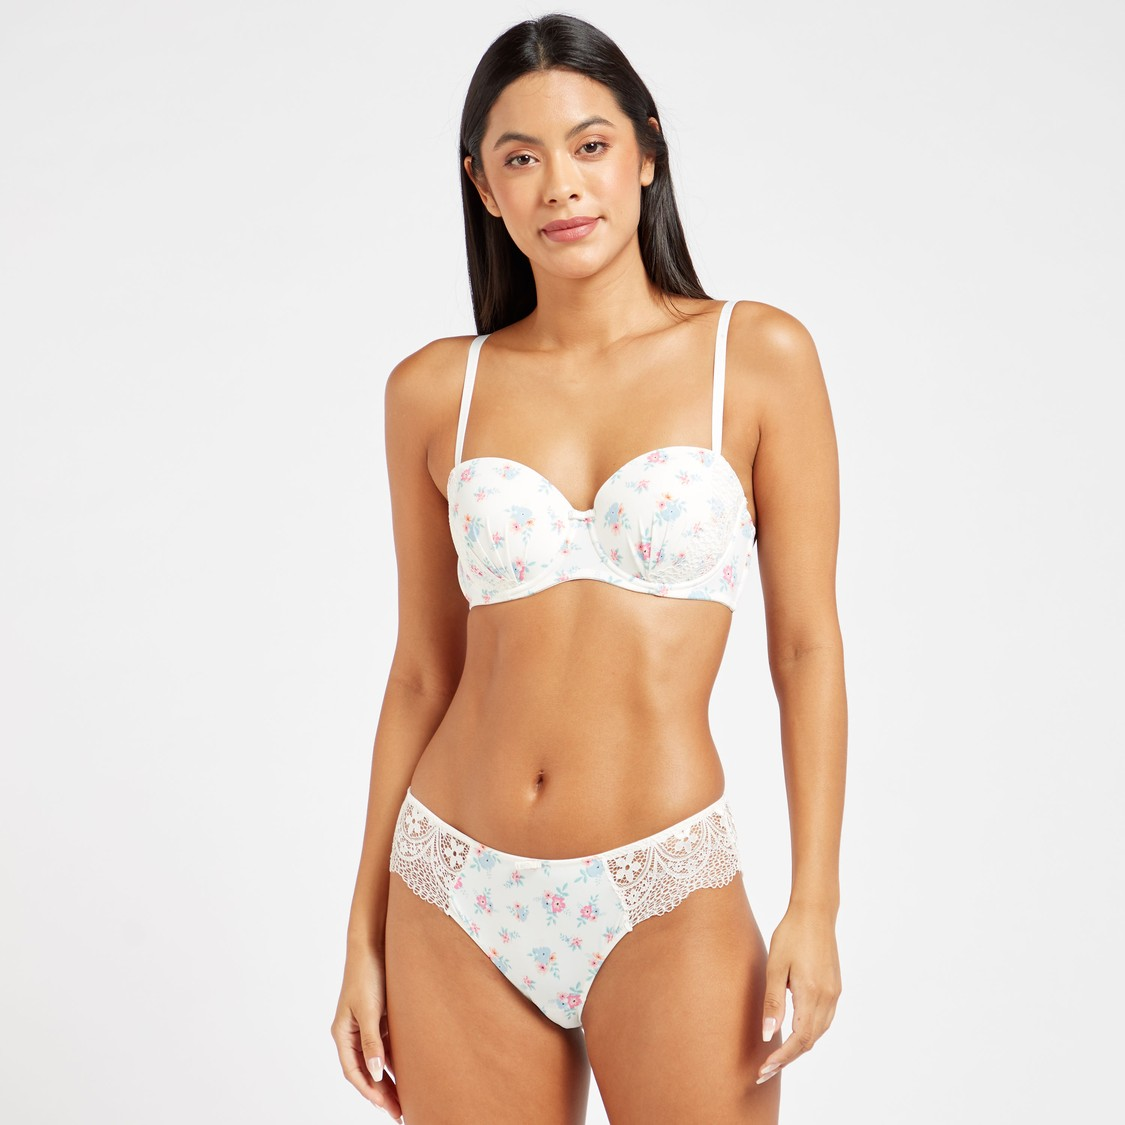 Pack of 2 - Lace Detail Bikini Briefs with Bow Applique